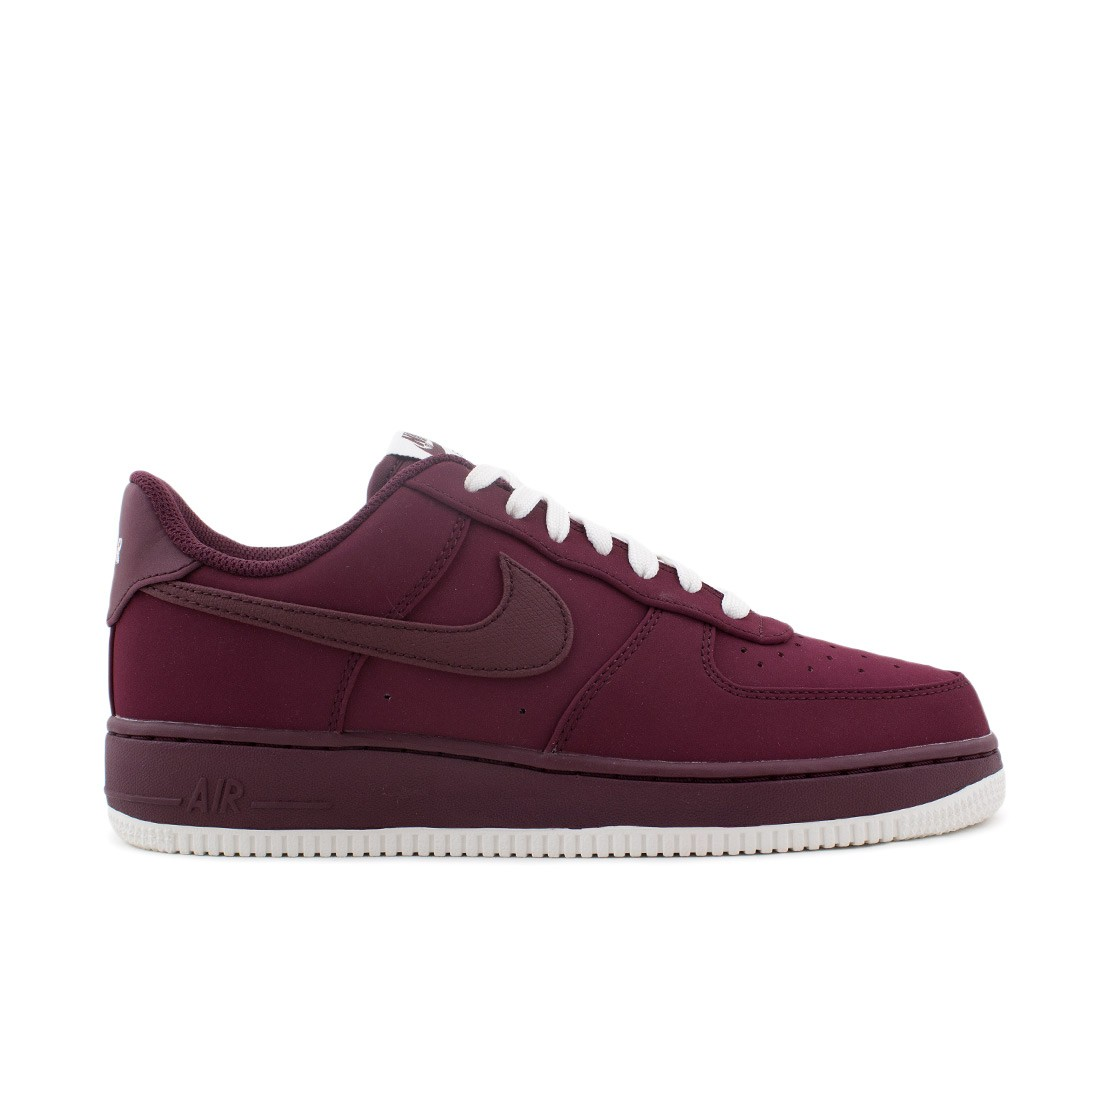 Bordeaux Force Force Bordeaux Air Nike Nike Air sthQrd